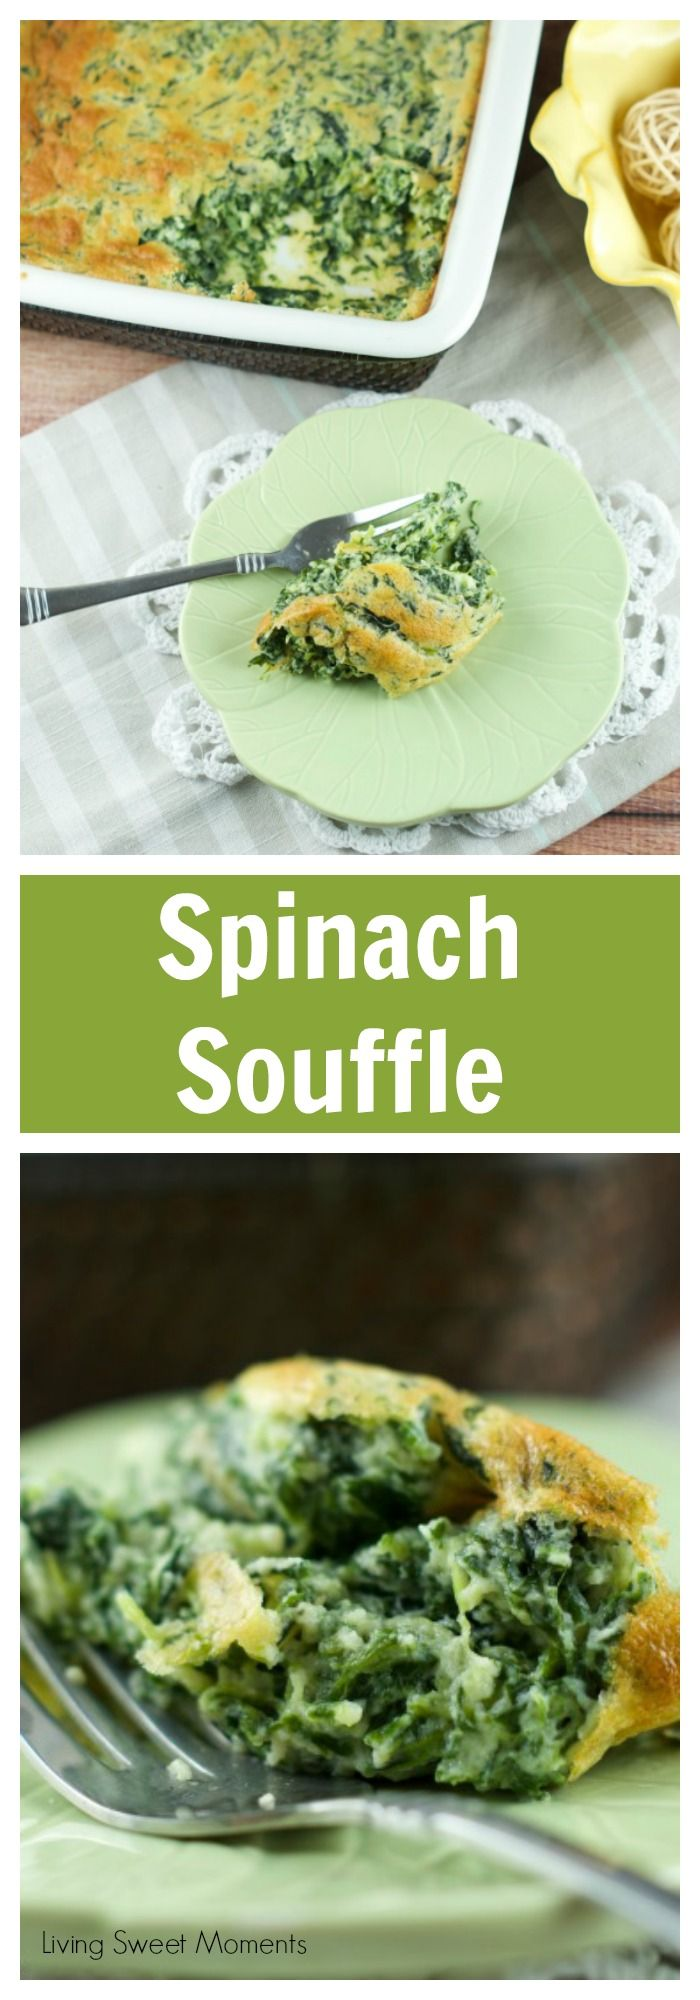 Spinach Souffle Recipe - This easy weeknight side dish is very easy to make and delicious. The perfect recipe to bake in the oven and complete your meal. More on livingsweetmoments.com